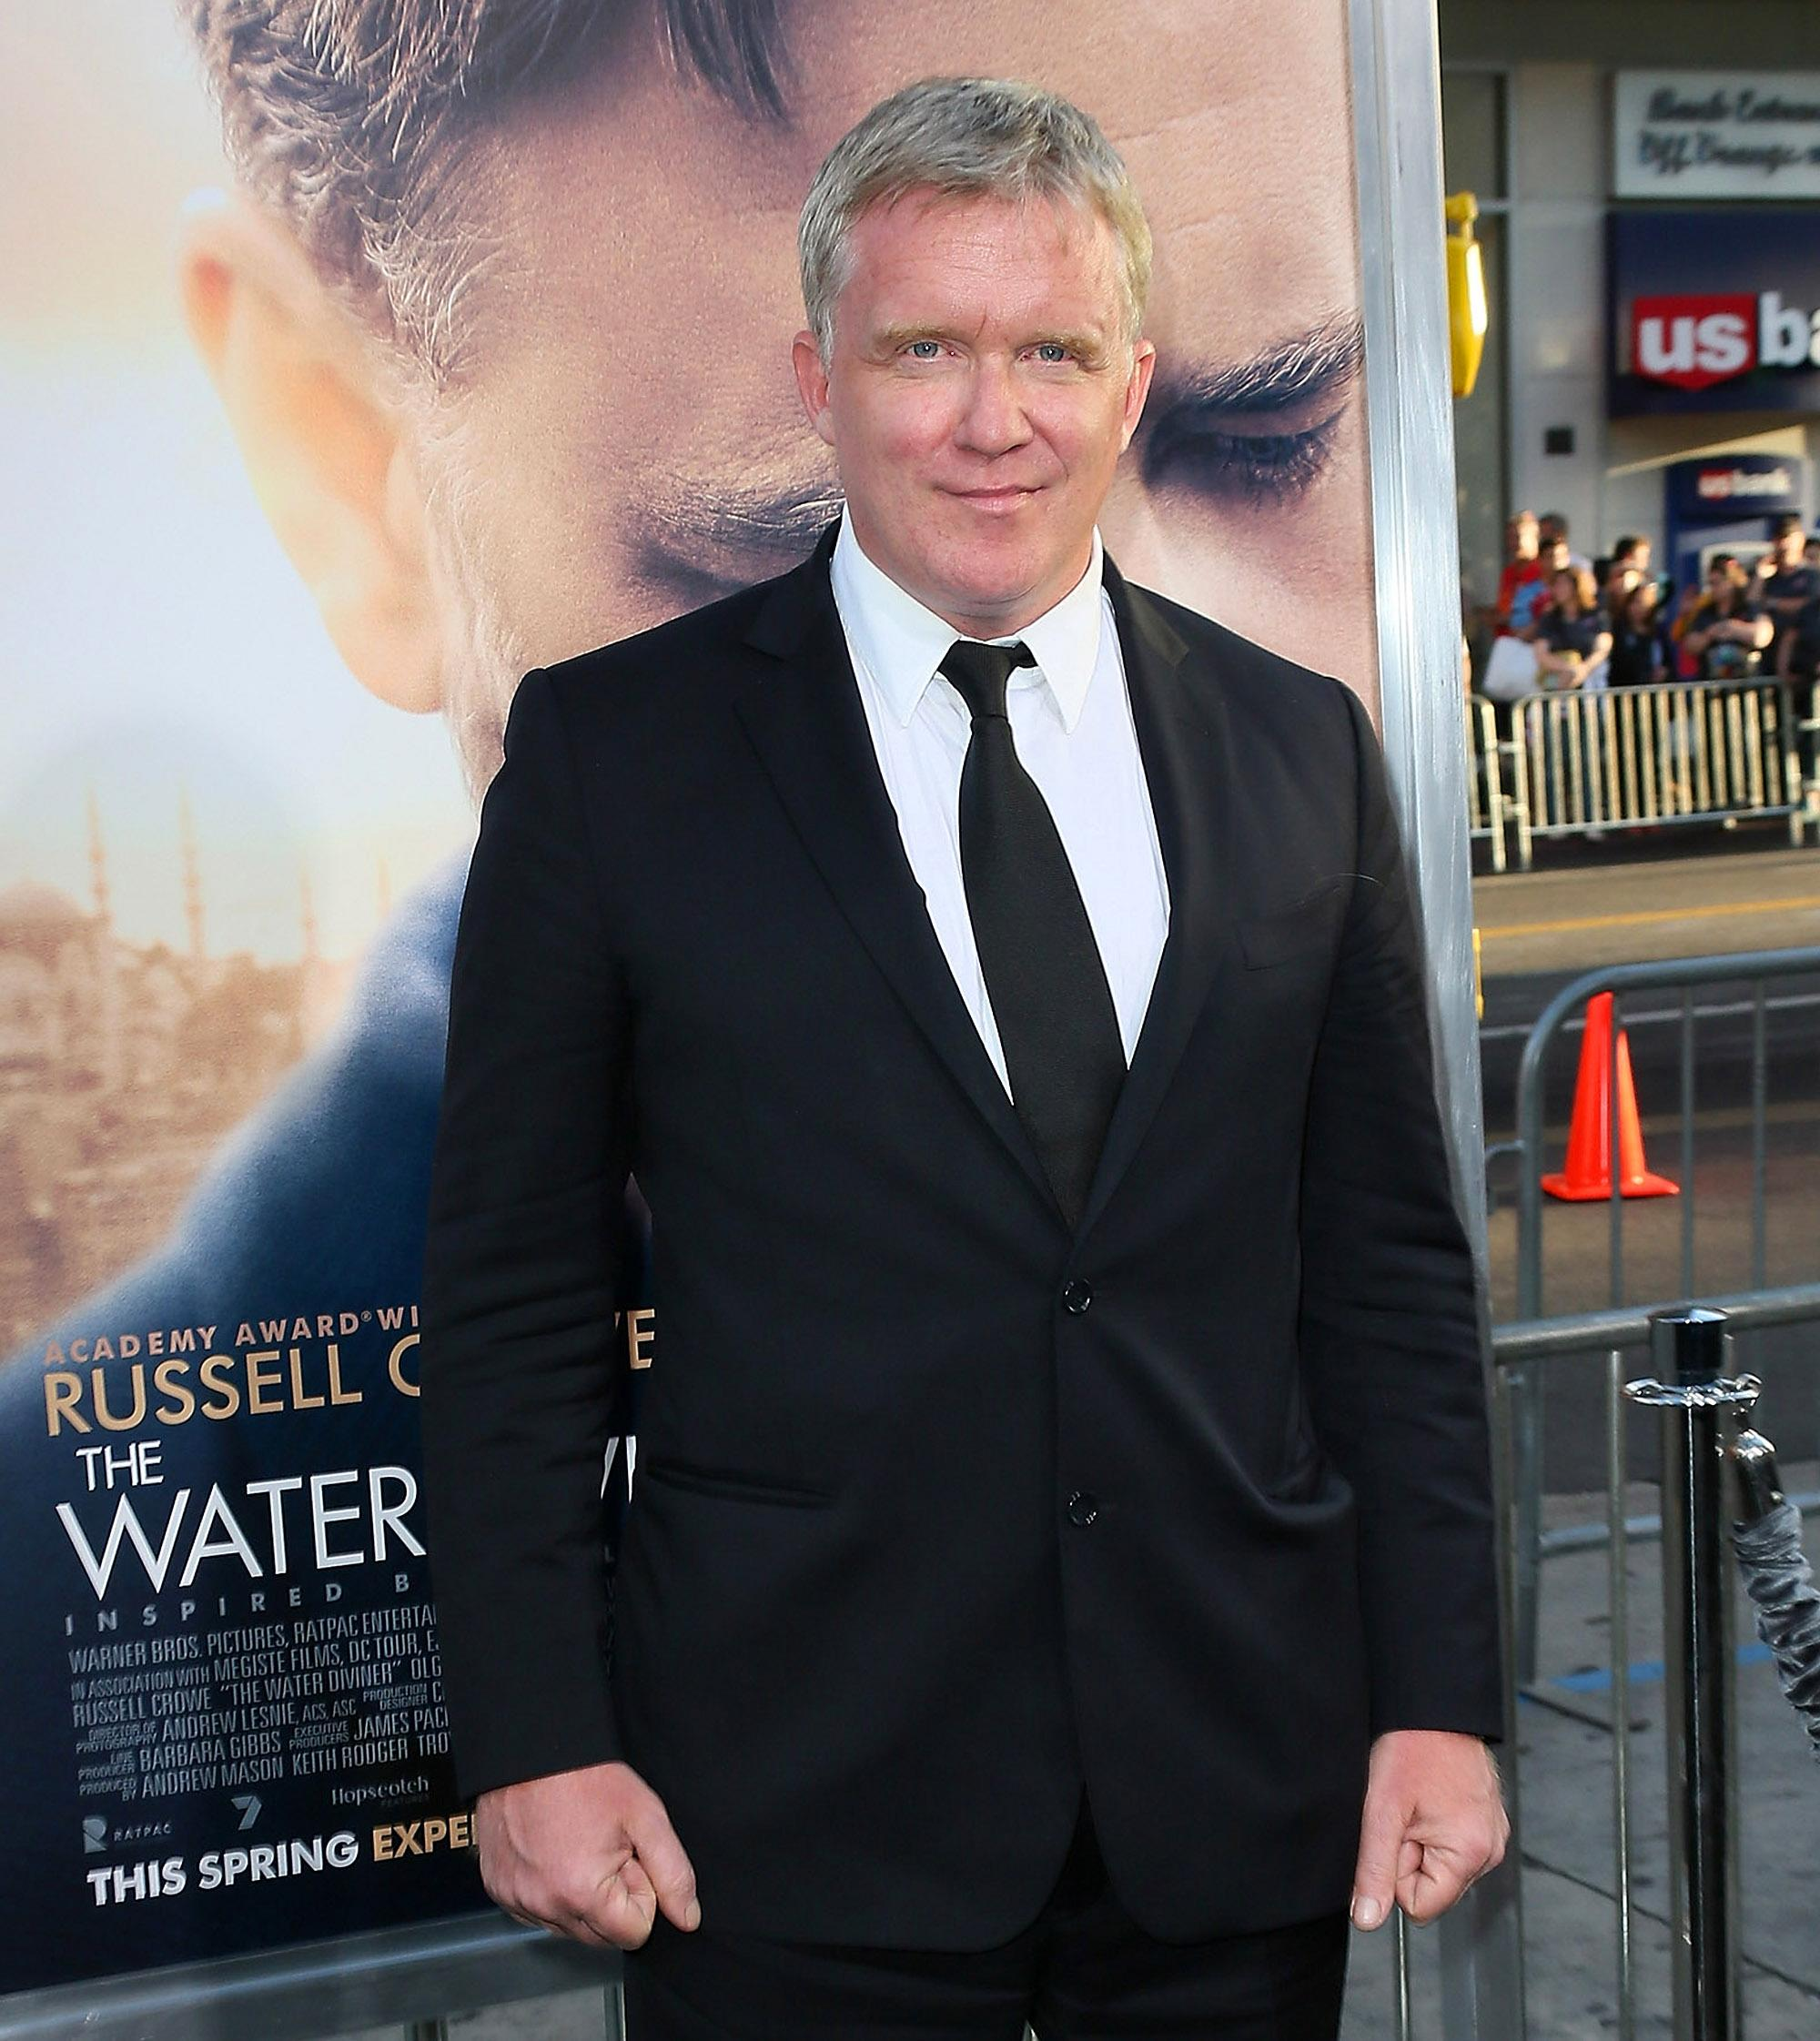 Ally Sheedy Fakes anthony michael hall charged with felony battery for alleged